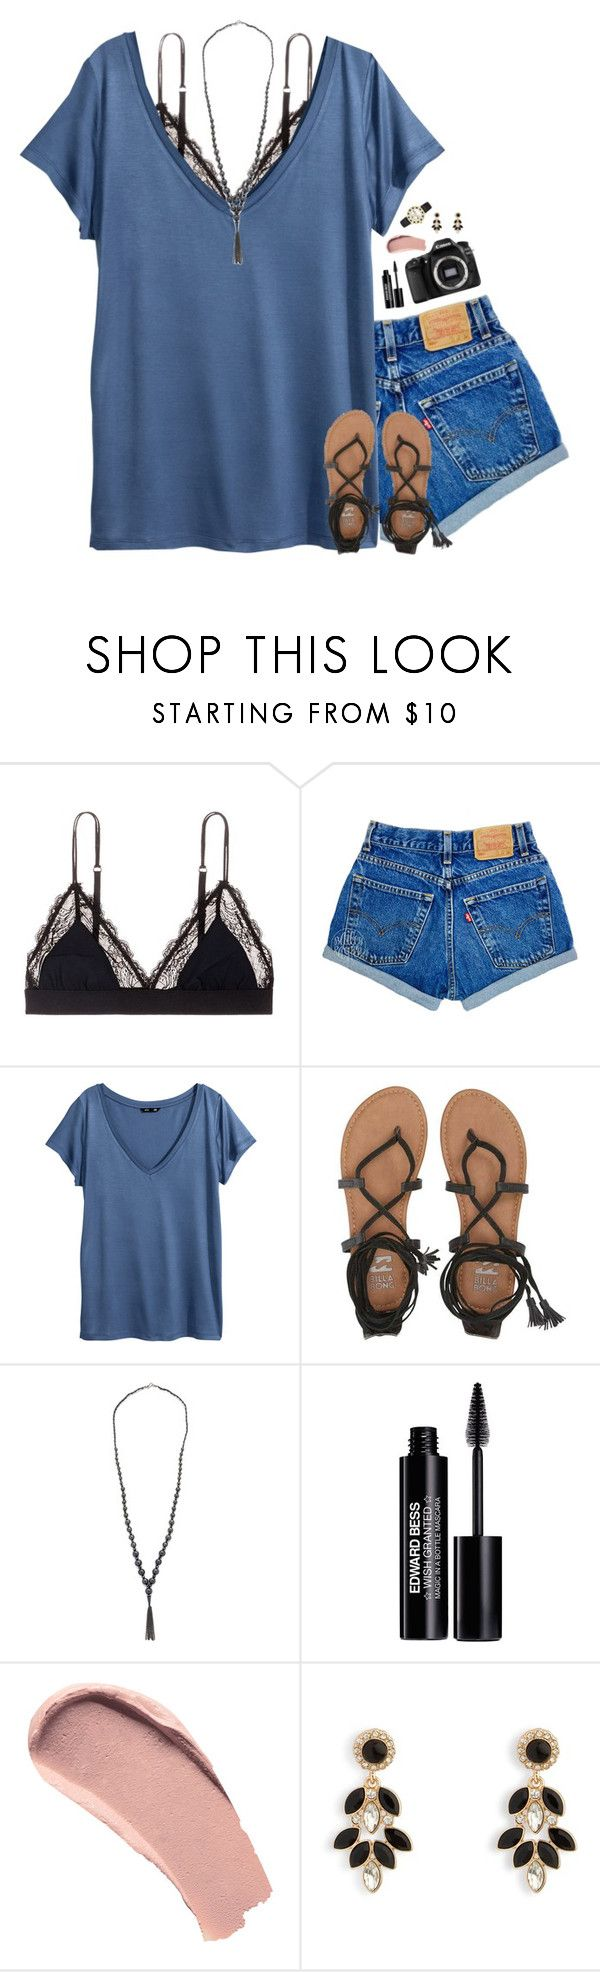 """""""just stay a minute"""" by pineapple5415 ❤ liked on Polyvore featuring LoveStories, H&M, Eos, Billabong, Chan Luu, Edward Bess, Burberry, Vera Bradley and Kate Spade"""